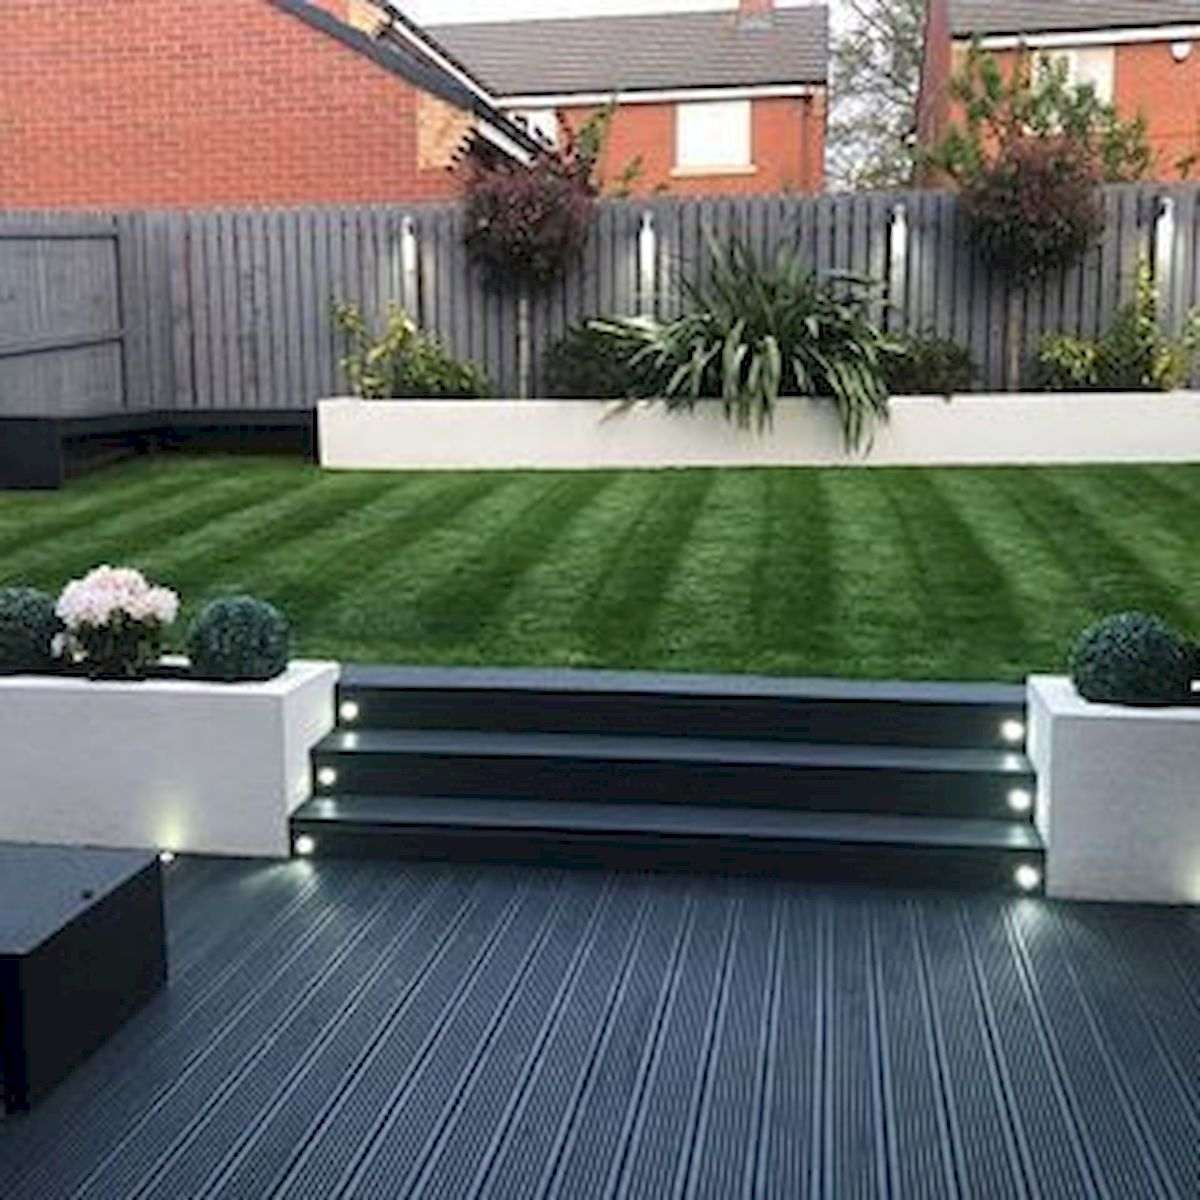 40 Fabulous Modern Garden Designs Ideas For Front Yard and ... on Patio And Grass Garden Ideas id=72550